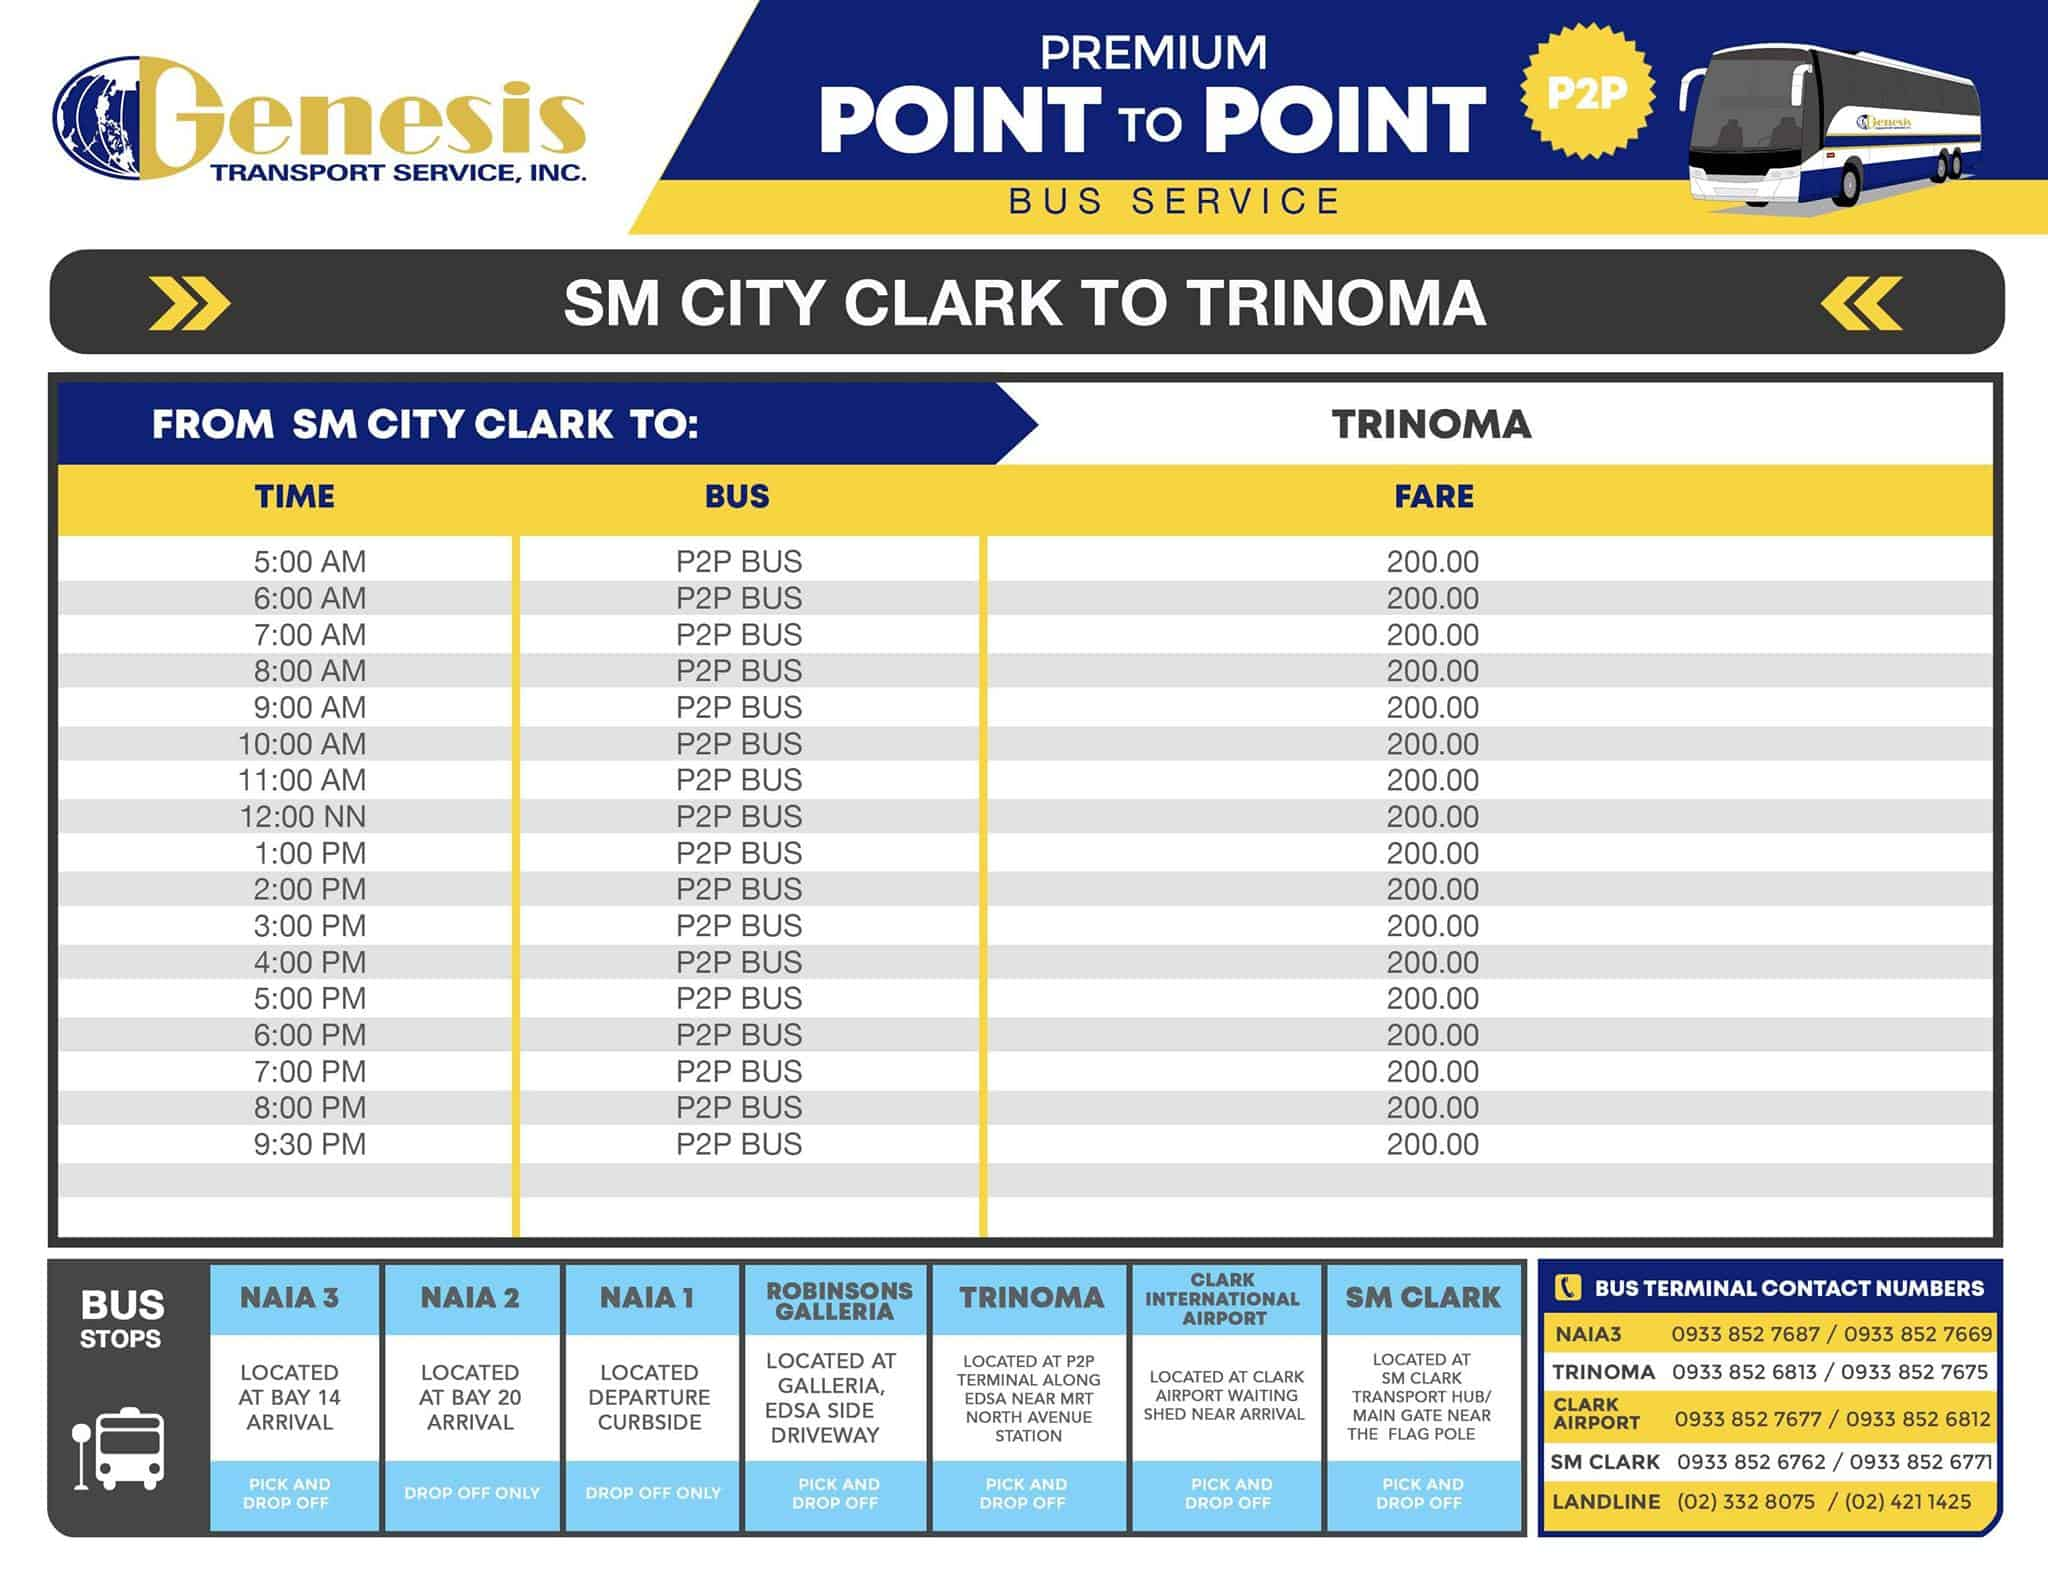 P2P BUS CLARK & MANILA: Schedule, Stops & Fares | The Poor Traveler